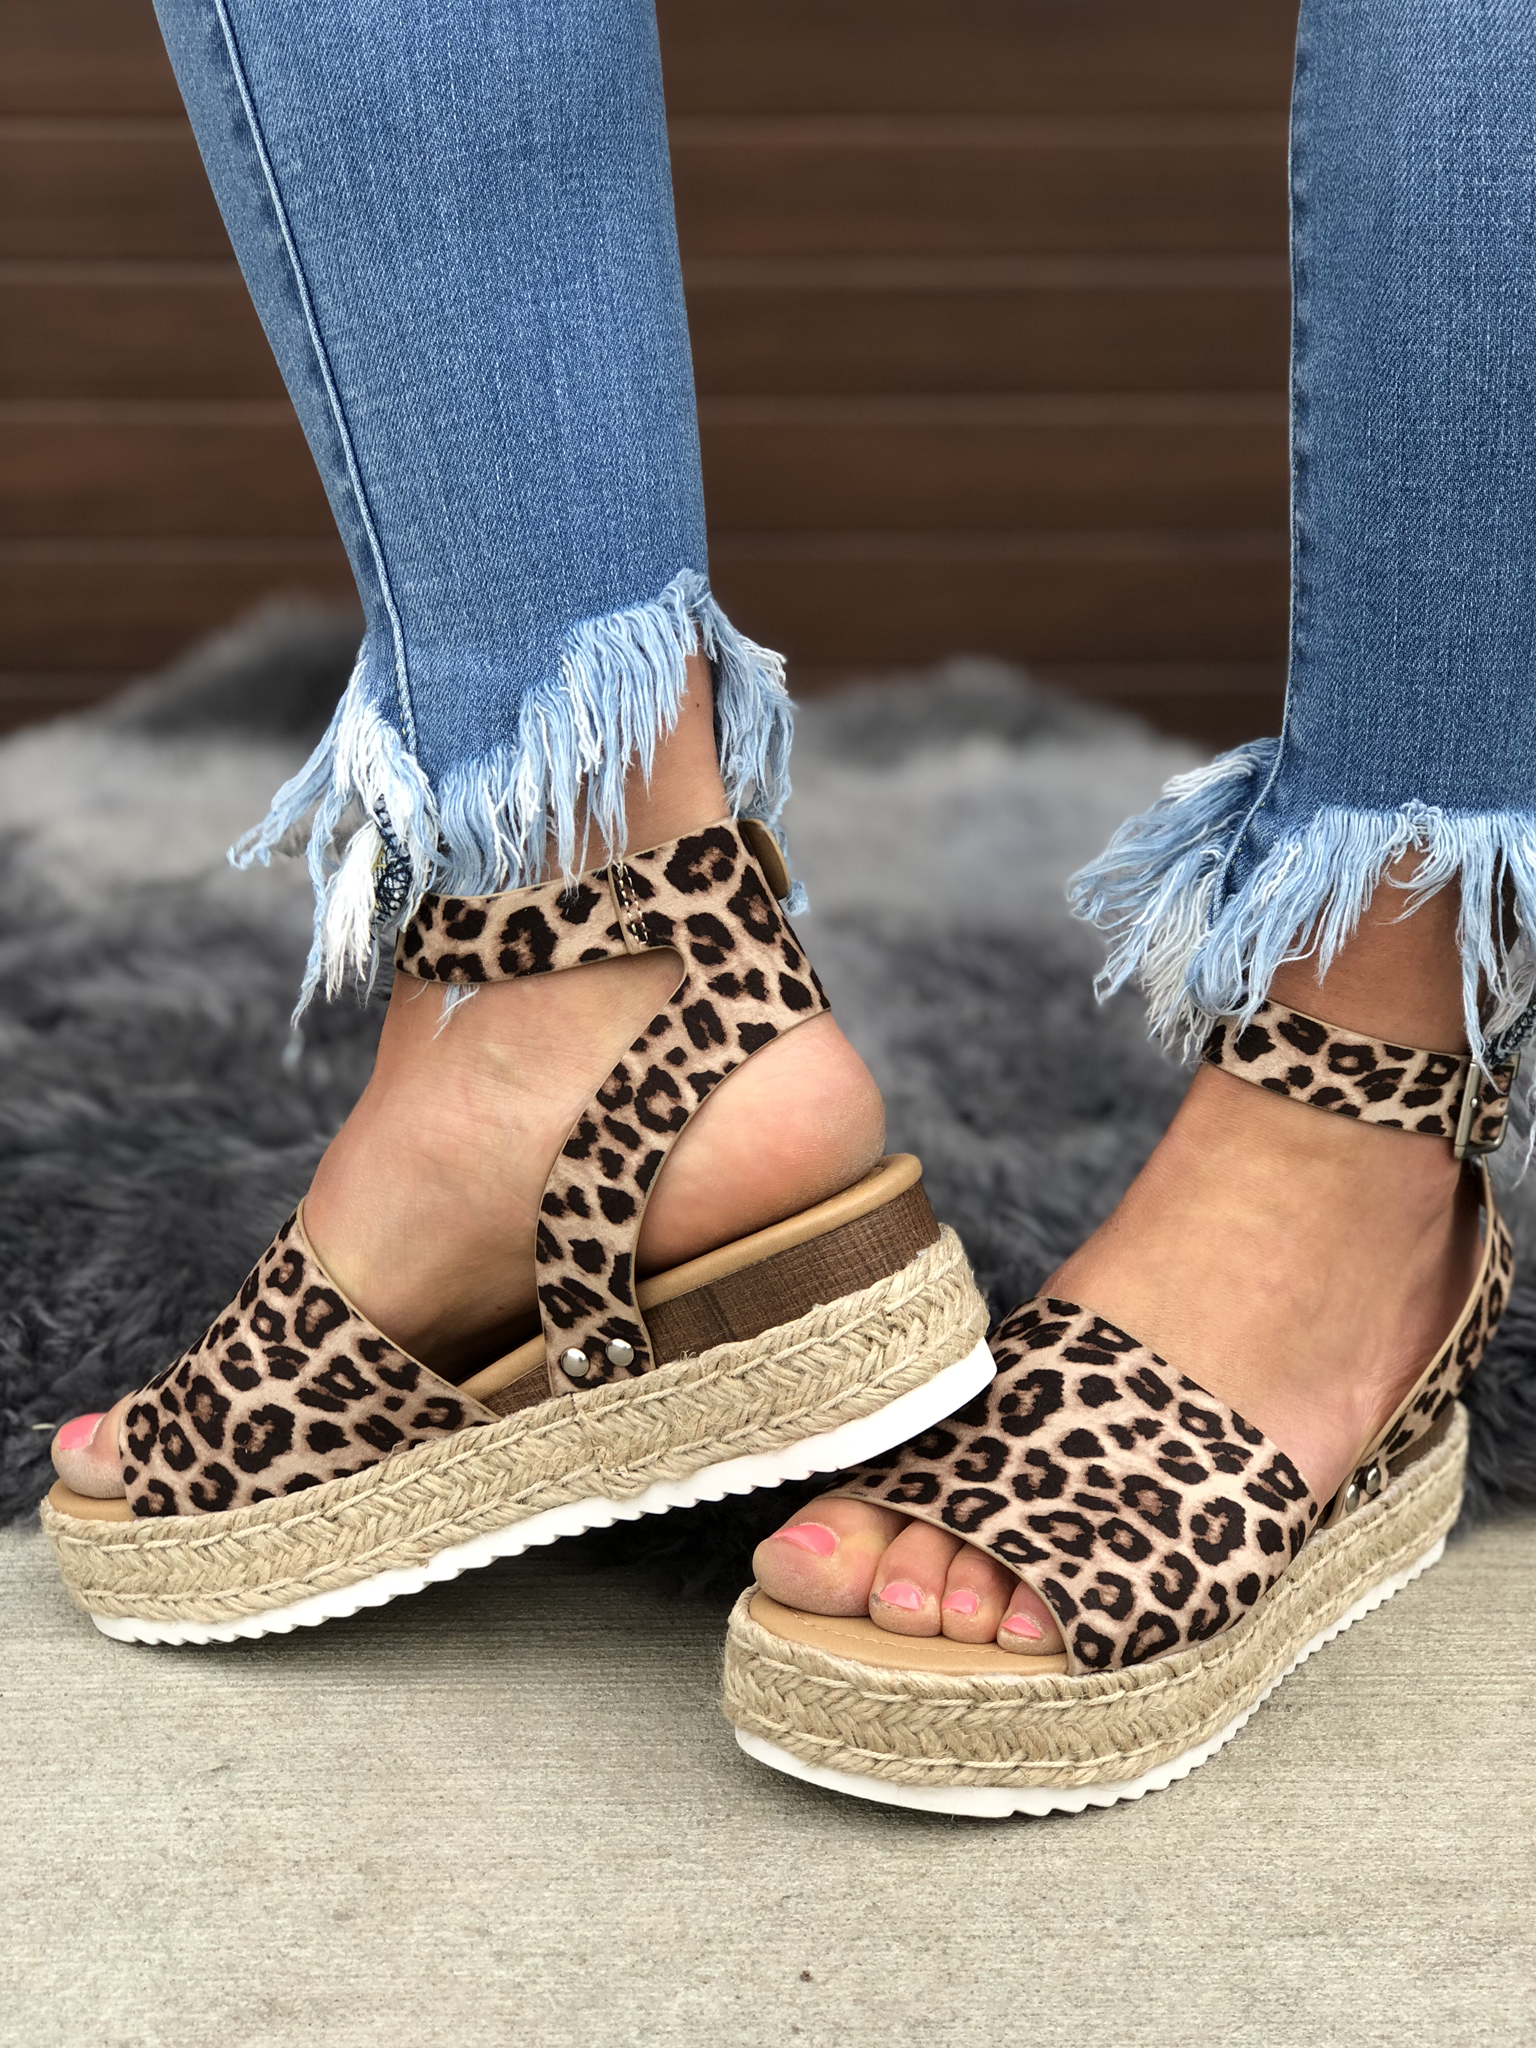 The Cheetah Platform Sandal 82382